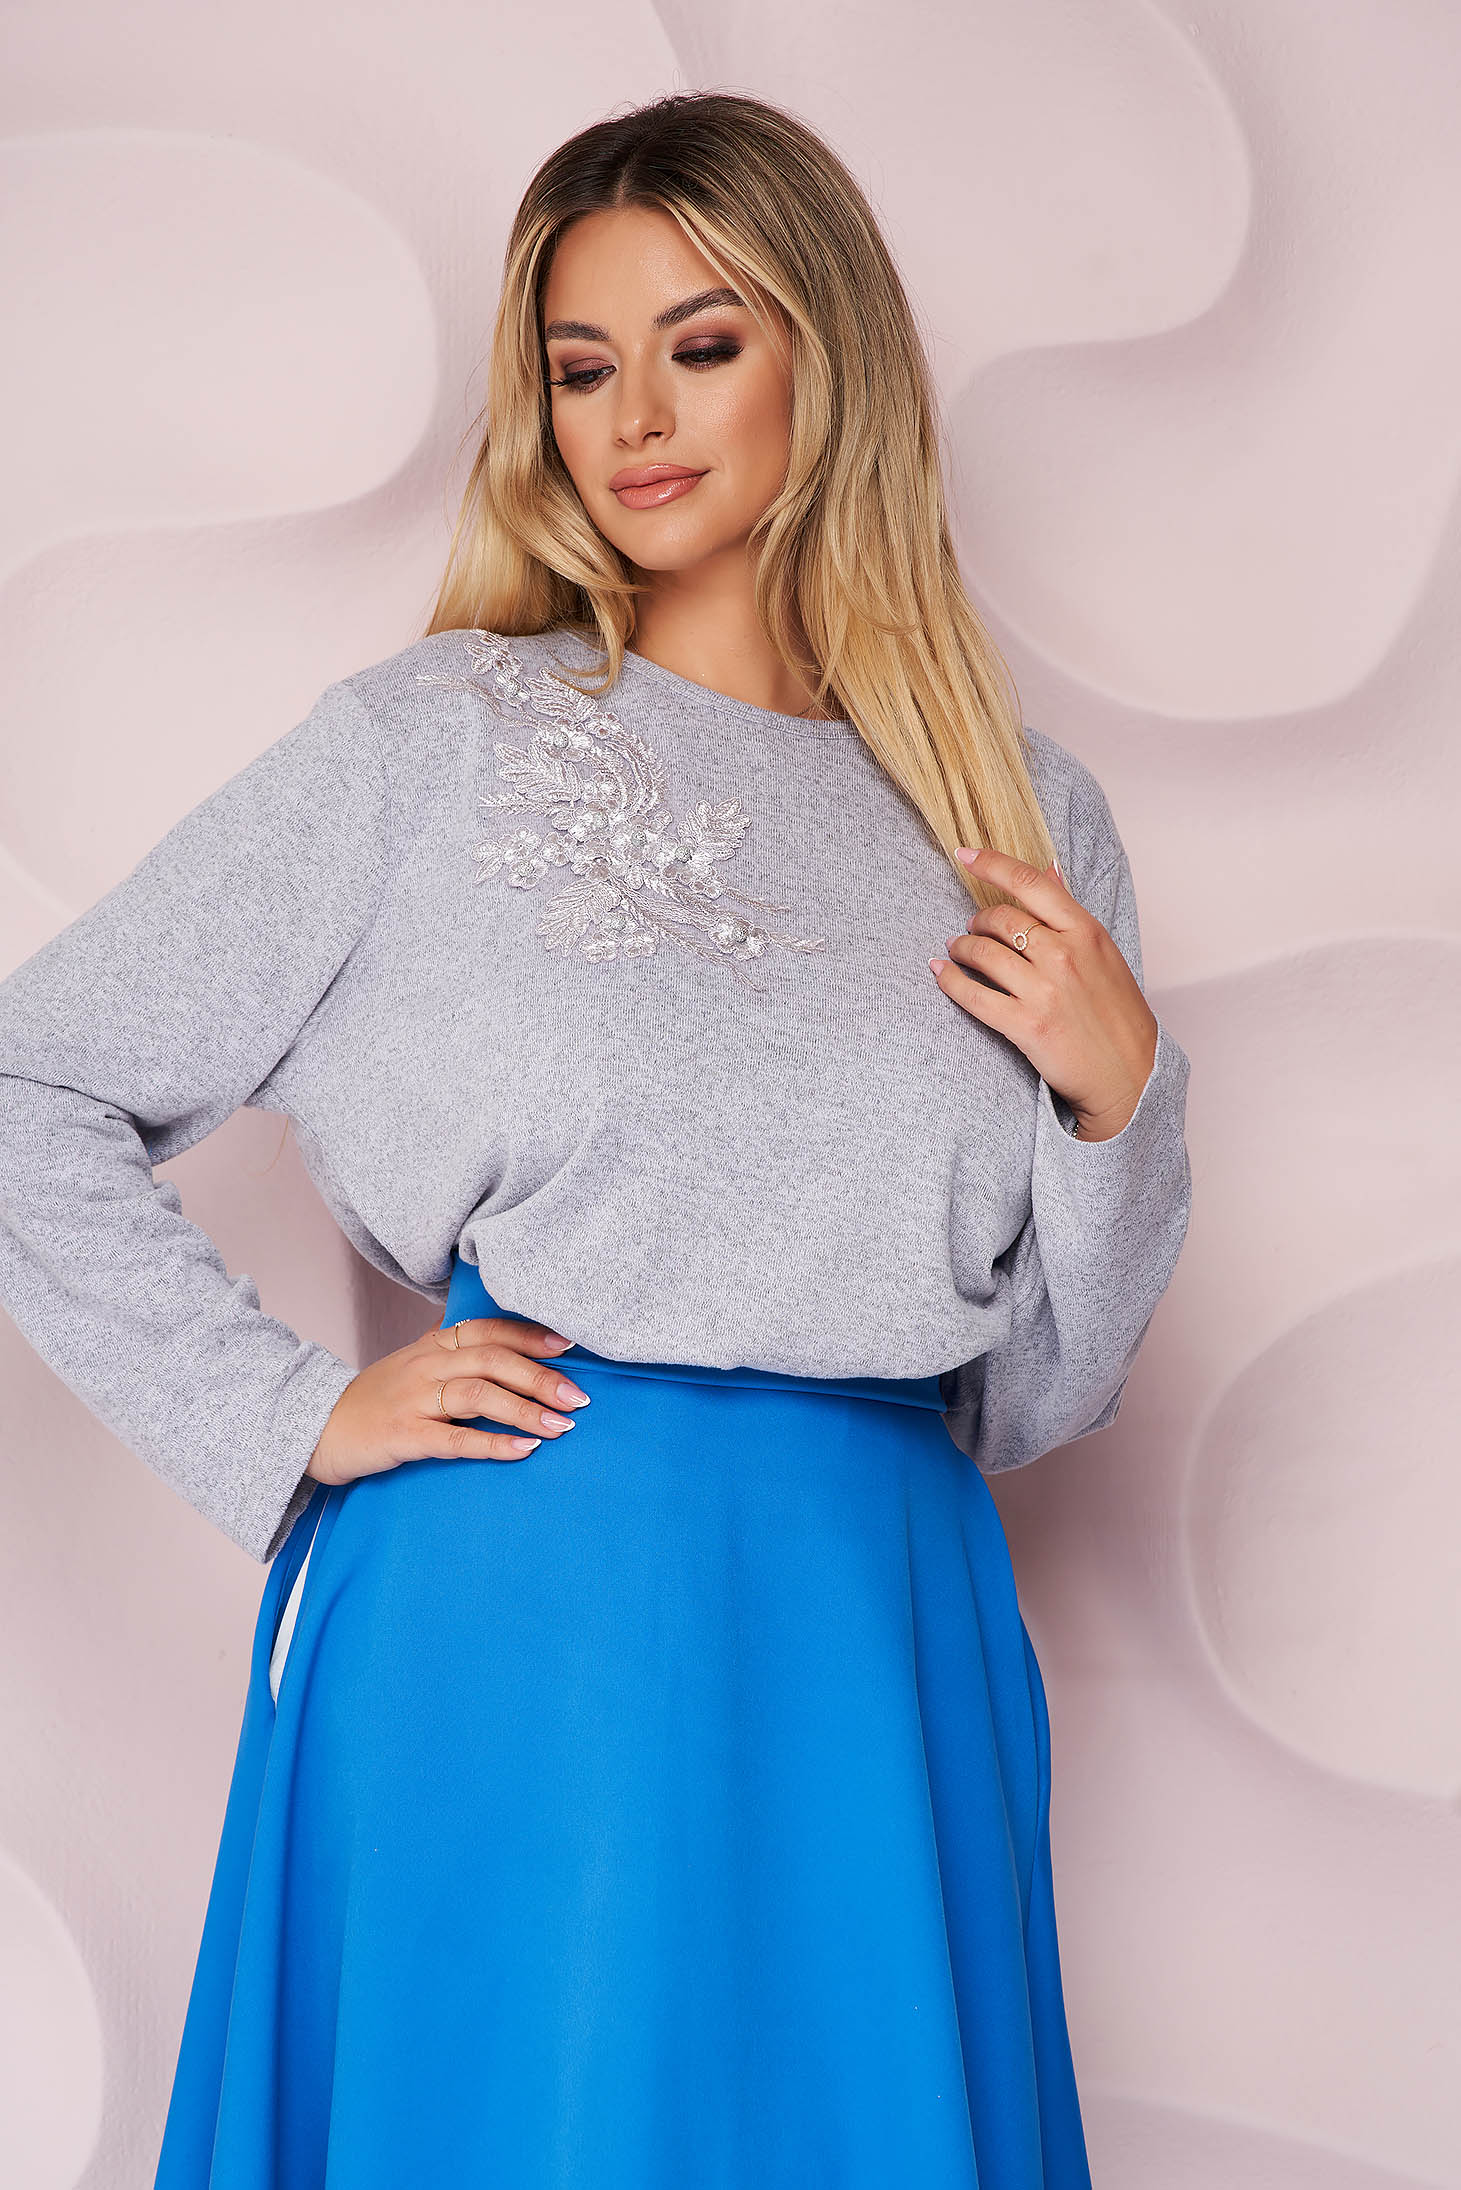 Lila sweater office loose fit thin fabric from elastic fabric knitted fabric